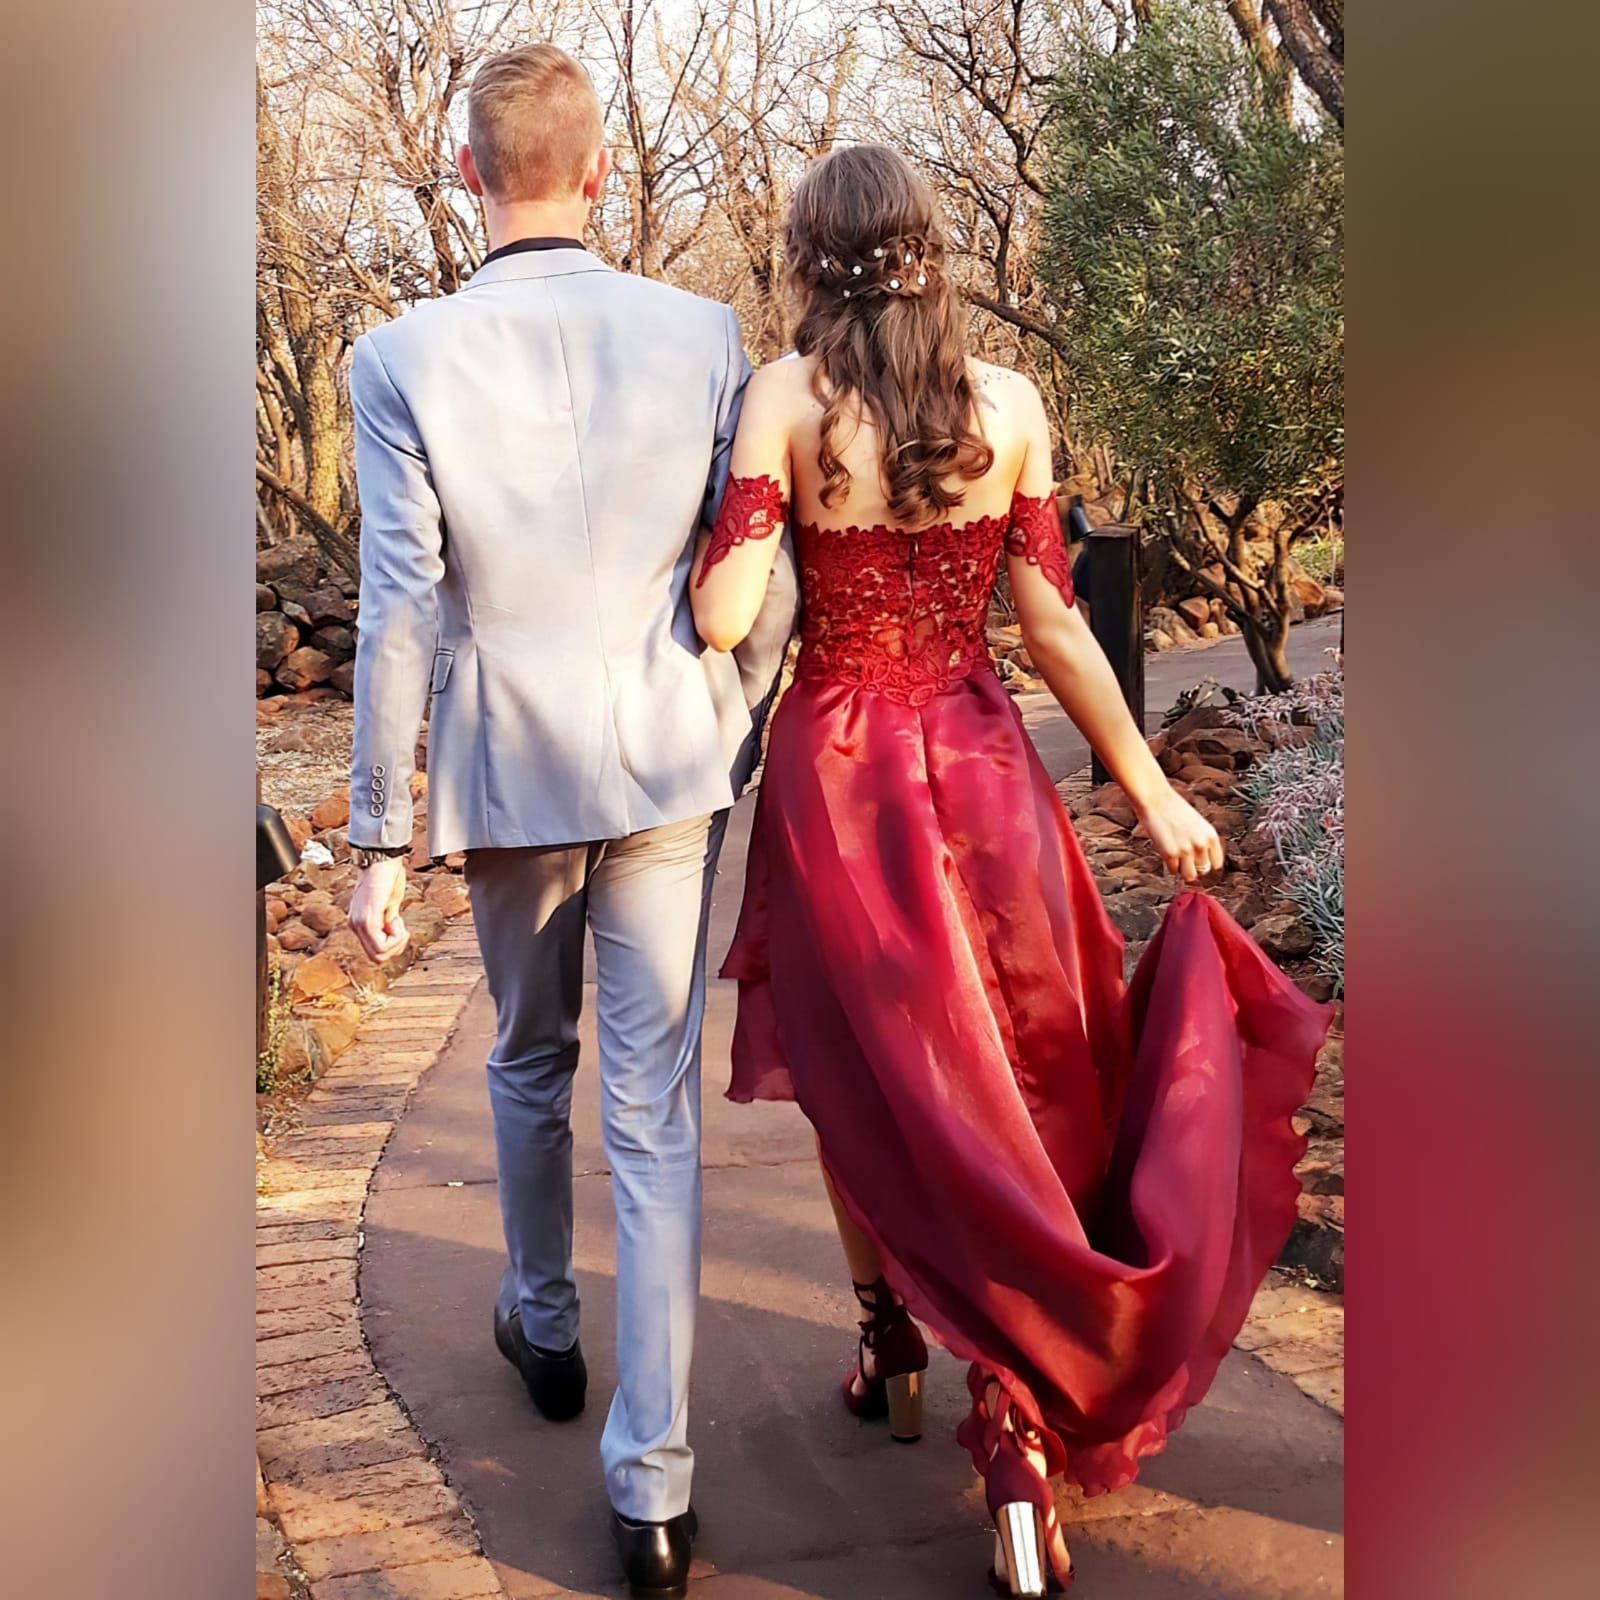 Dark red high low evening dress 4 the perfect dark red evening dress for your prom night if you want to look elegant yet adorable. With a lace bodice and a double layer hi - lo flowy bottom for a slight dramatic effect.